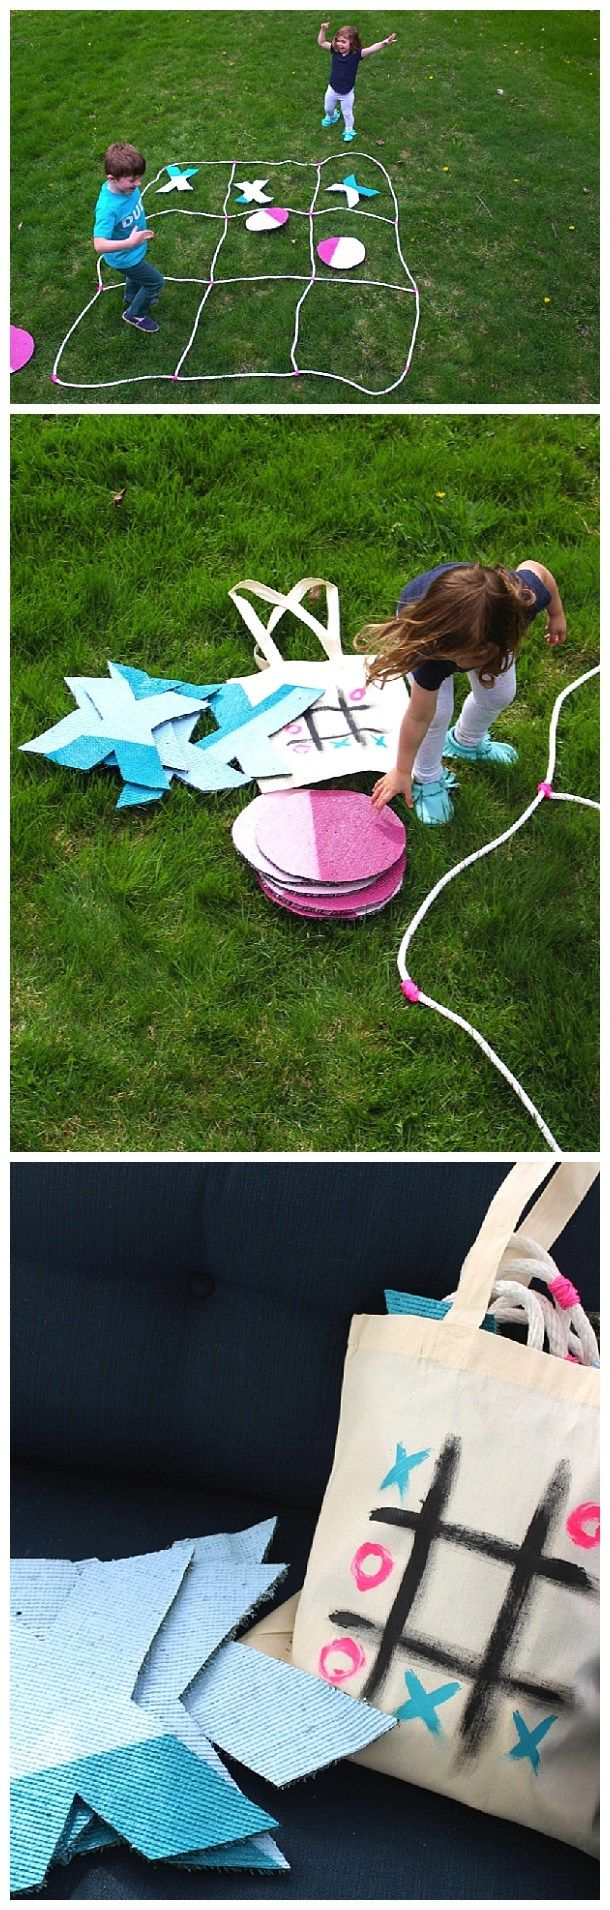 Do it yourself outdoor party games the best backyard entertainment diy projects outdoor games giant do it yourself tic tac toe game with storage bag tutorial via cloudy day gray solutioingenieria Choice Image